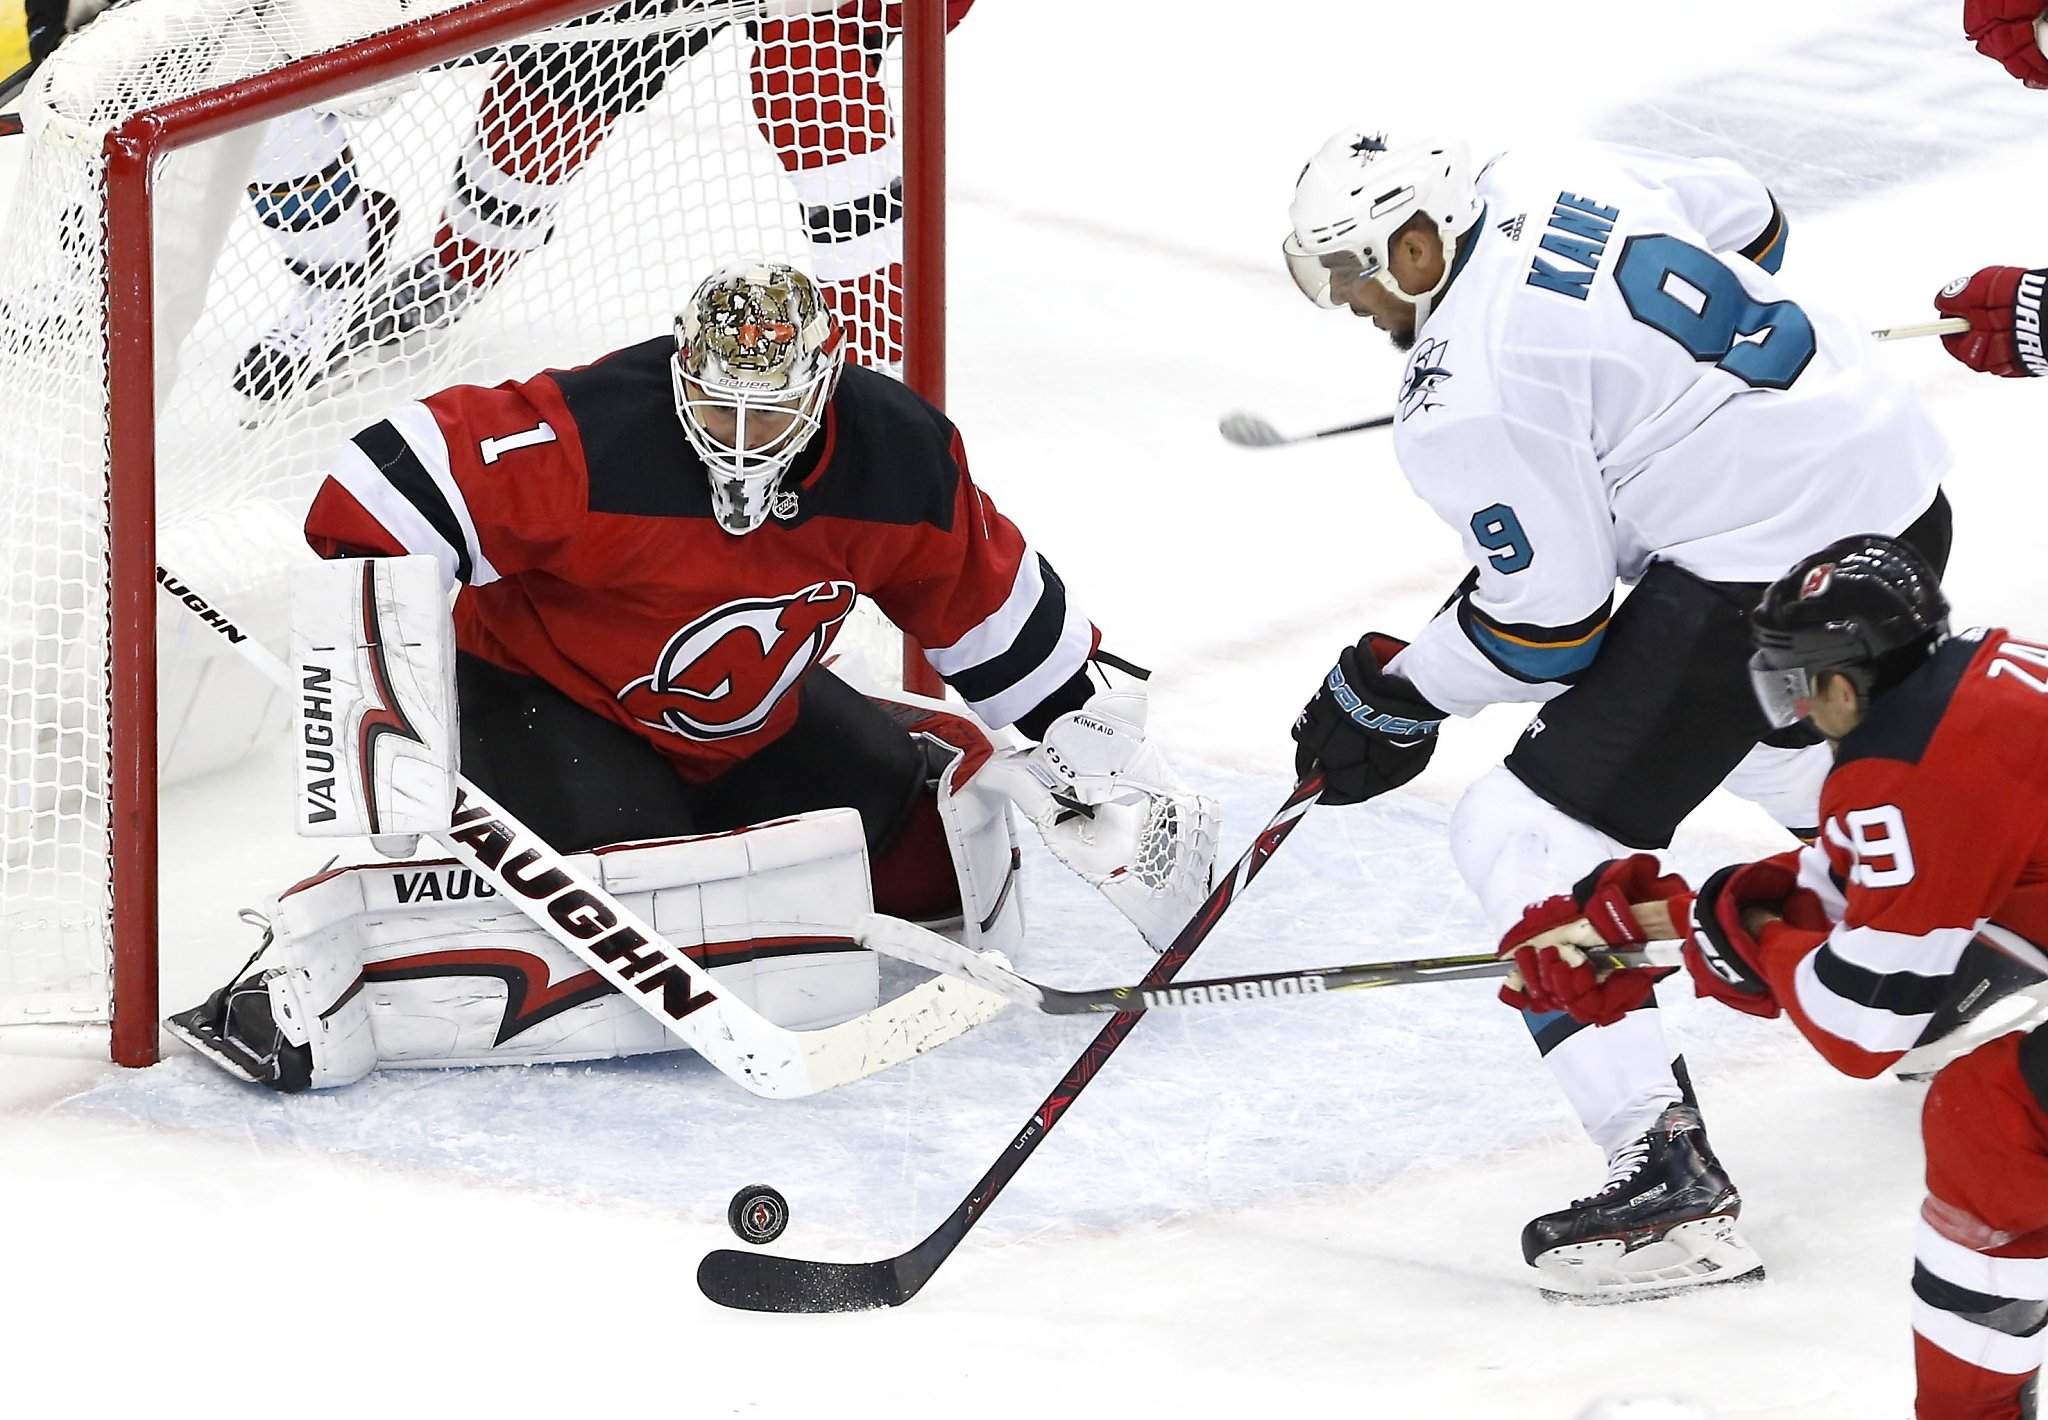 Sharks let another lead slip away, lose to Devils - SFGate